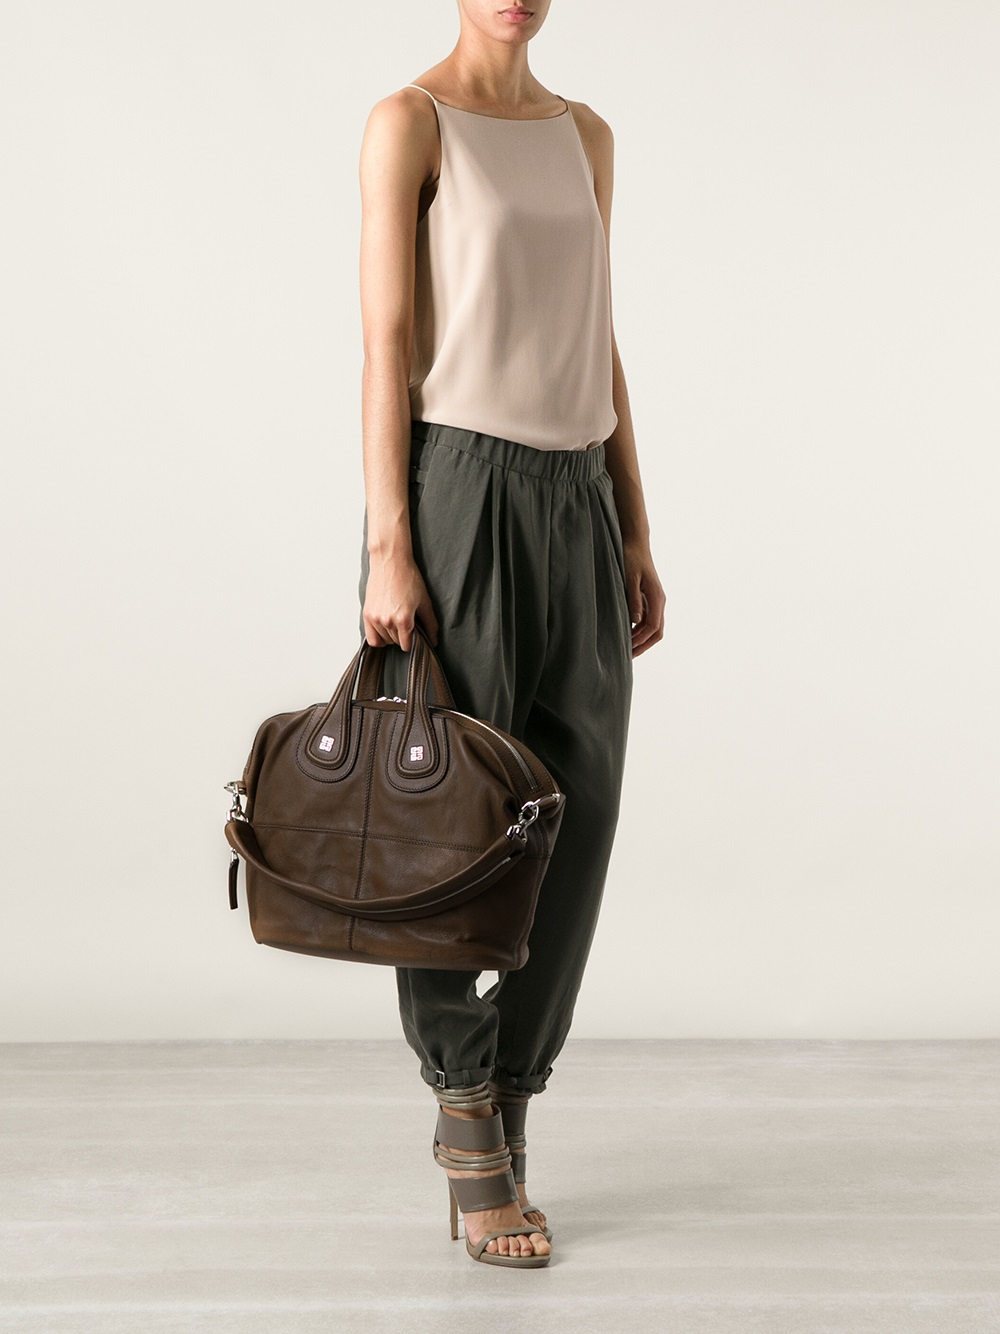 ae1dc0e22e Lyst - Givenchy Medium Nightingale Tote in Brown